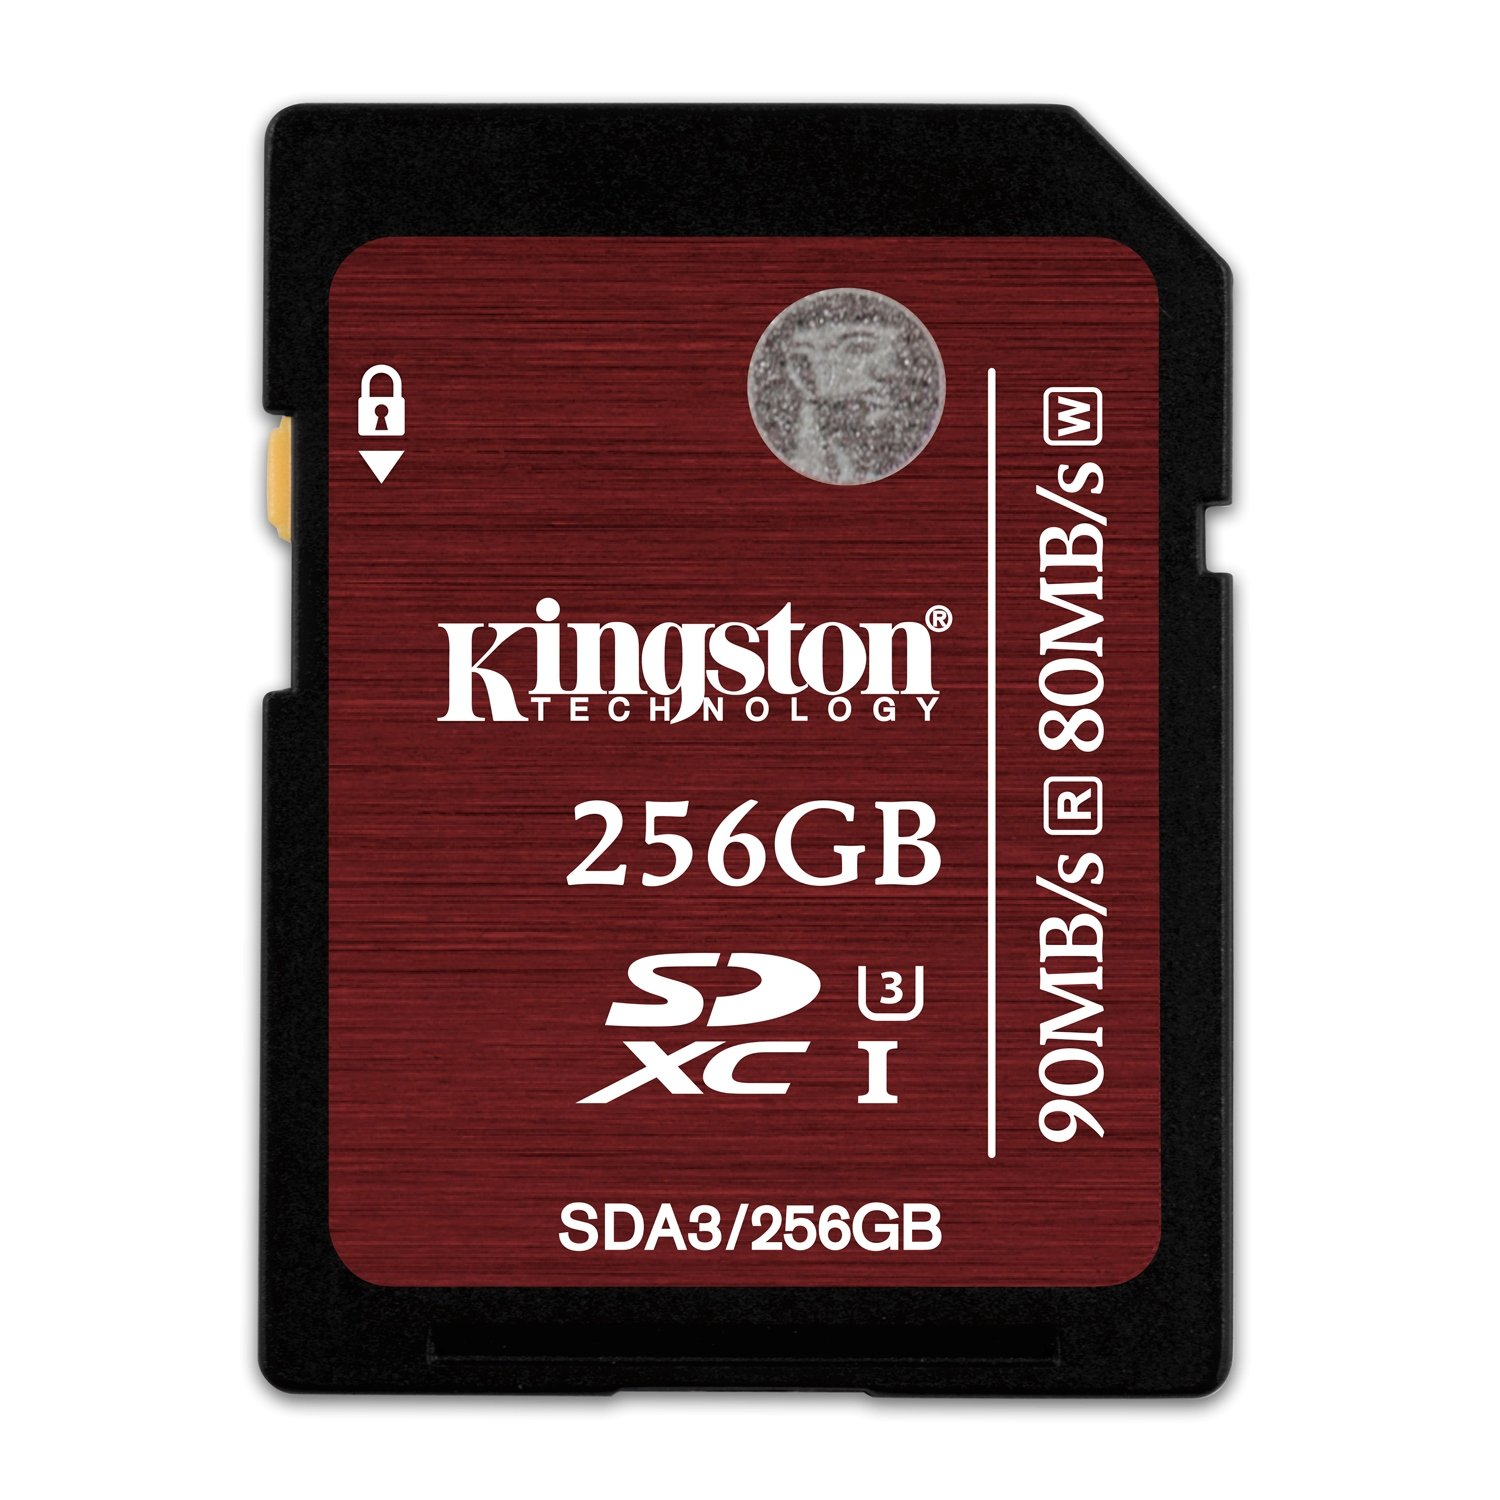 Kingston Digital 256GB SDXC UHS-I Speed Class 3 90MB/s Read 80MB/s Write Flash Memory Card - SDA3/256GB